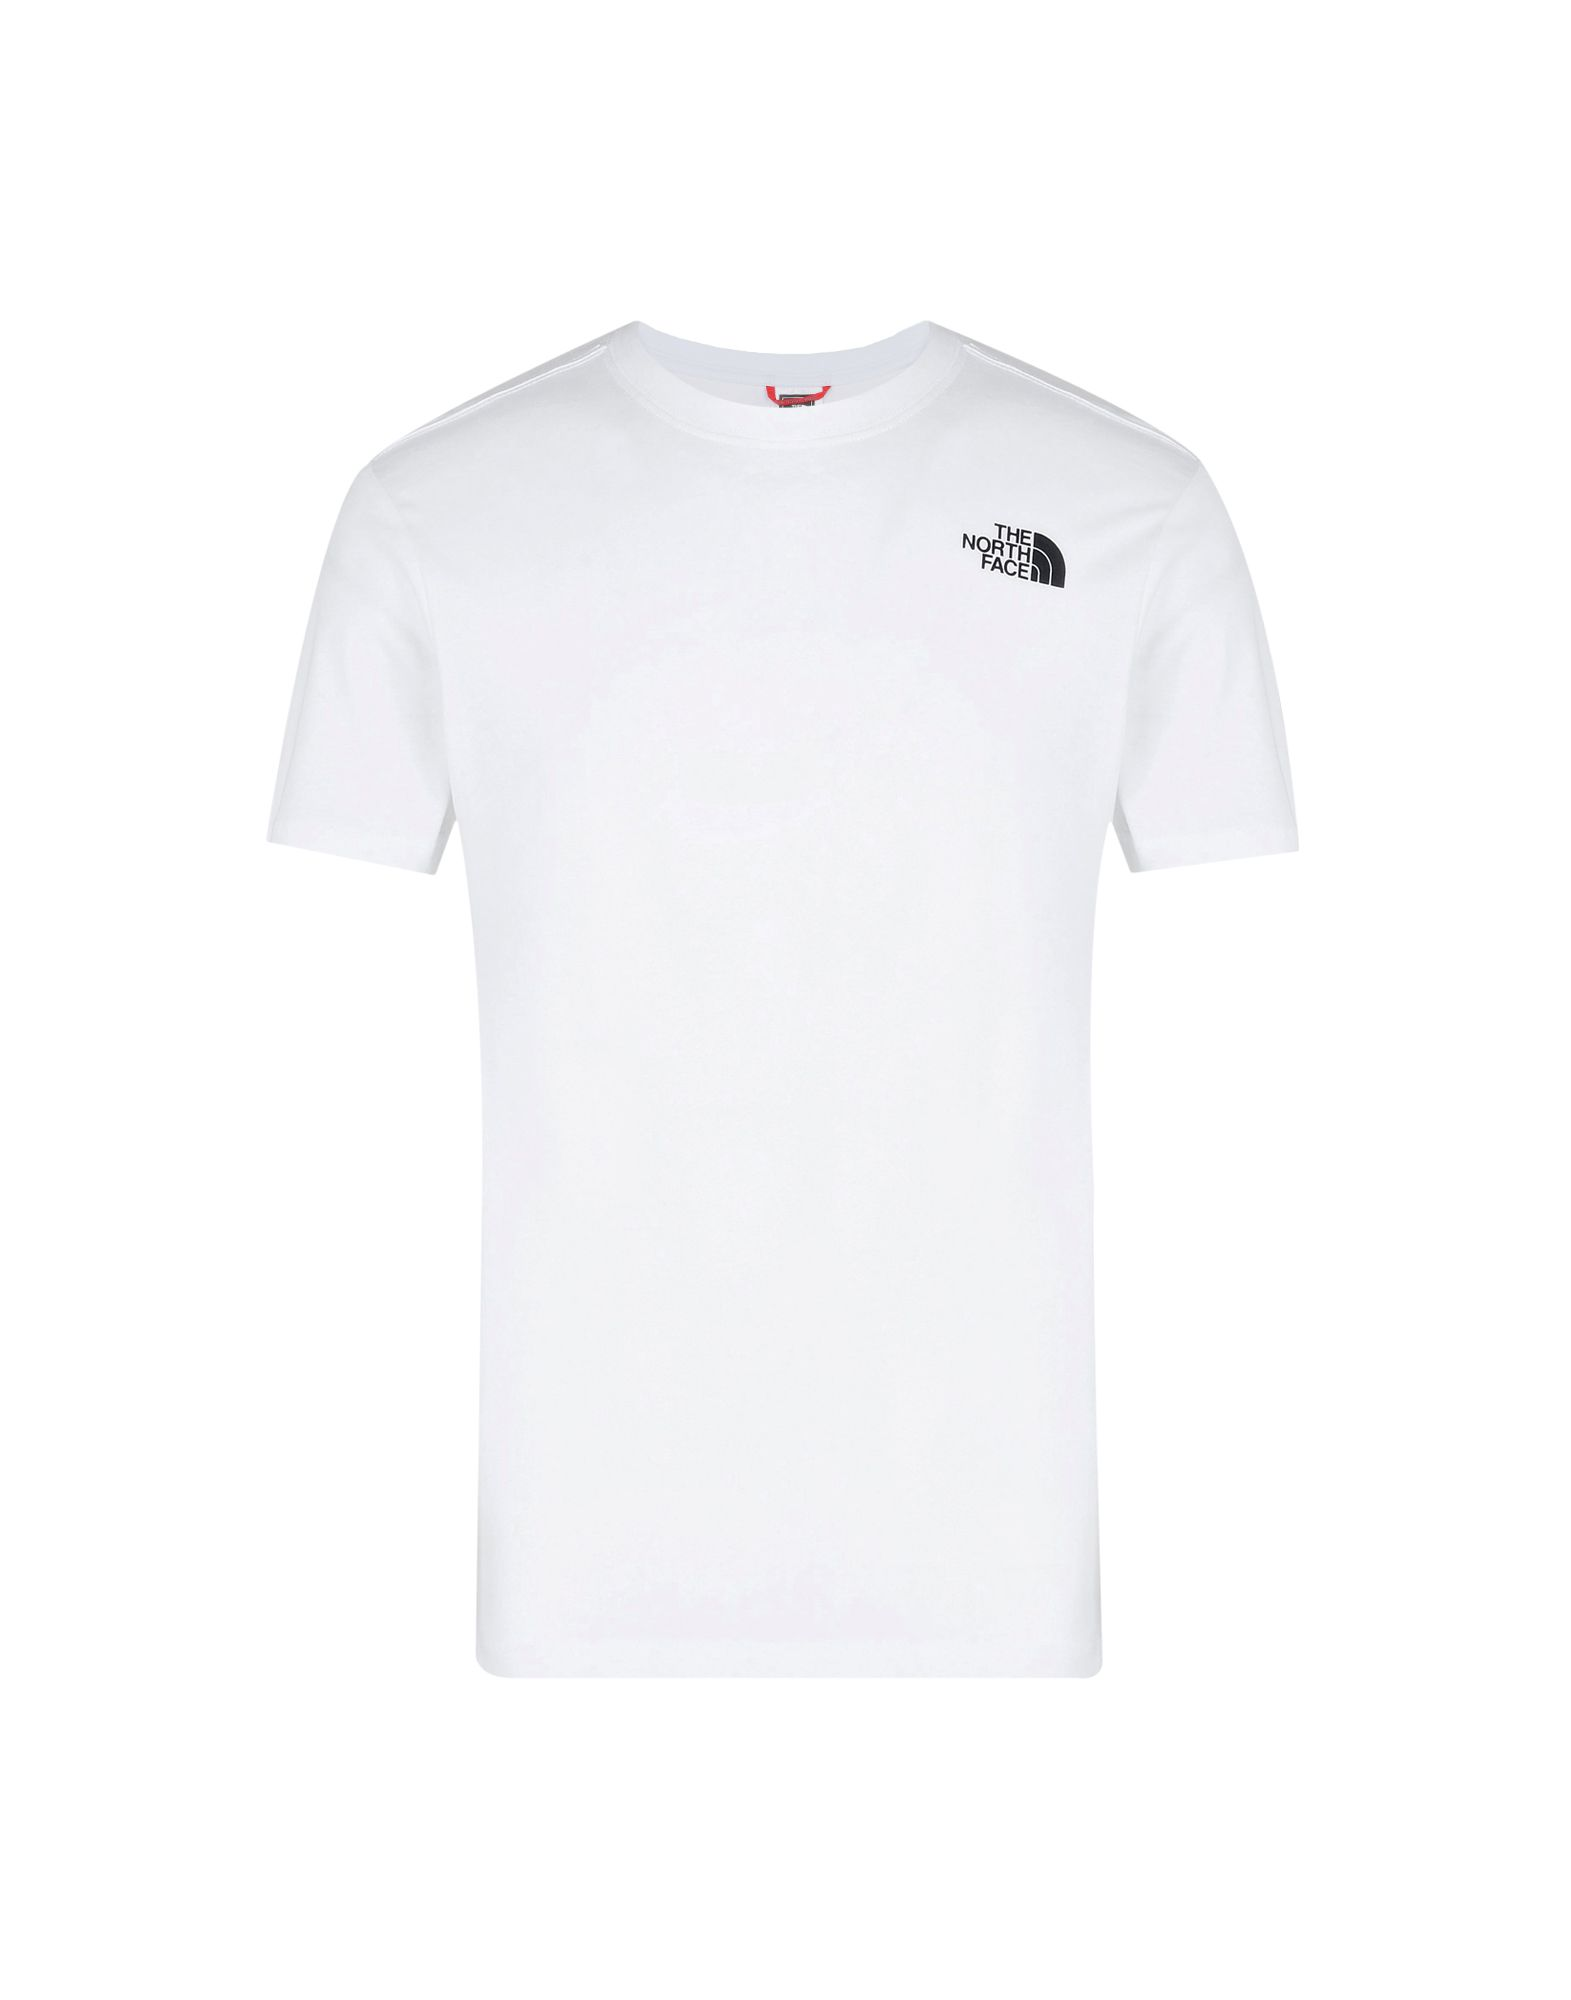 256f89b27 THE NORTH FACE T-shirt - T-Shirts and Tops | YOOX.COM